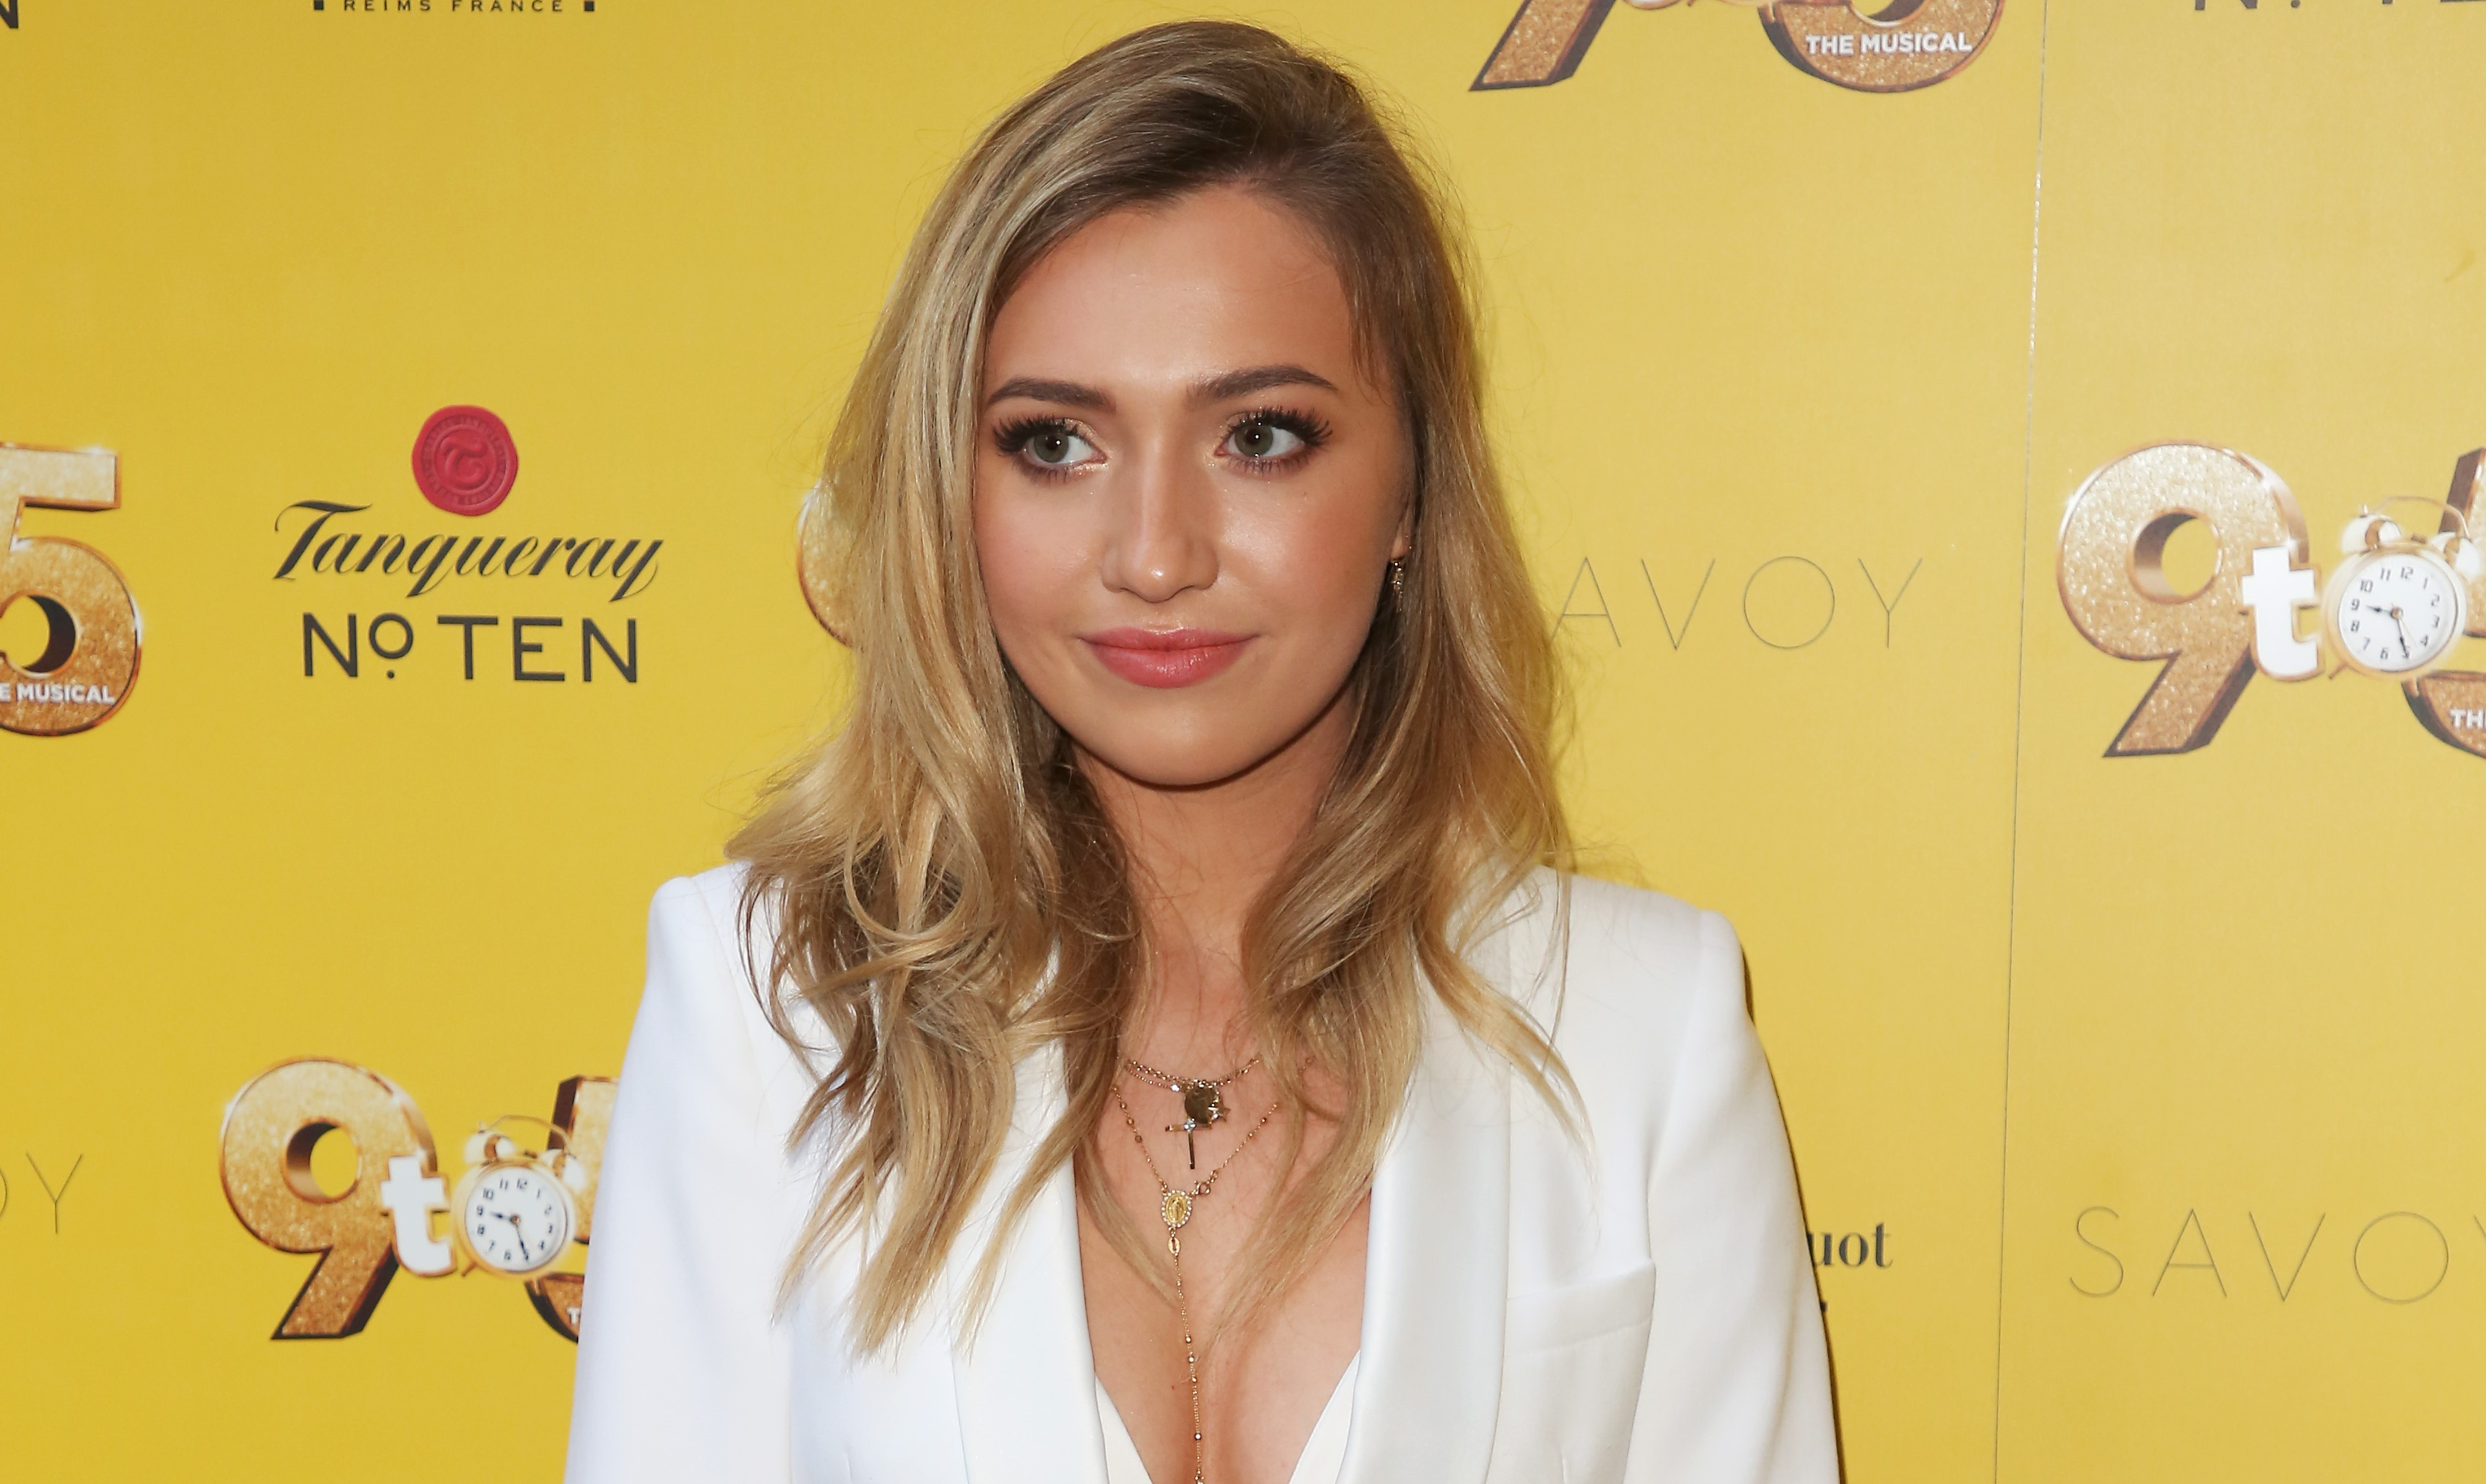 EastEnders Tilly Keeper speaks out on rumours of romance with former co-star